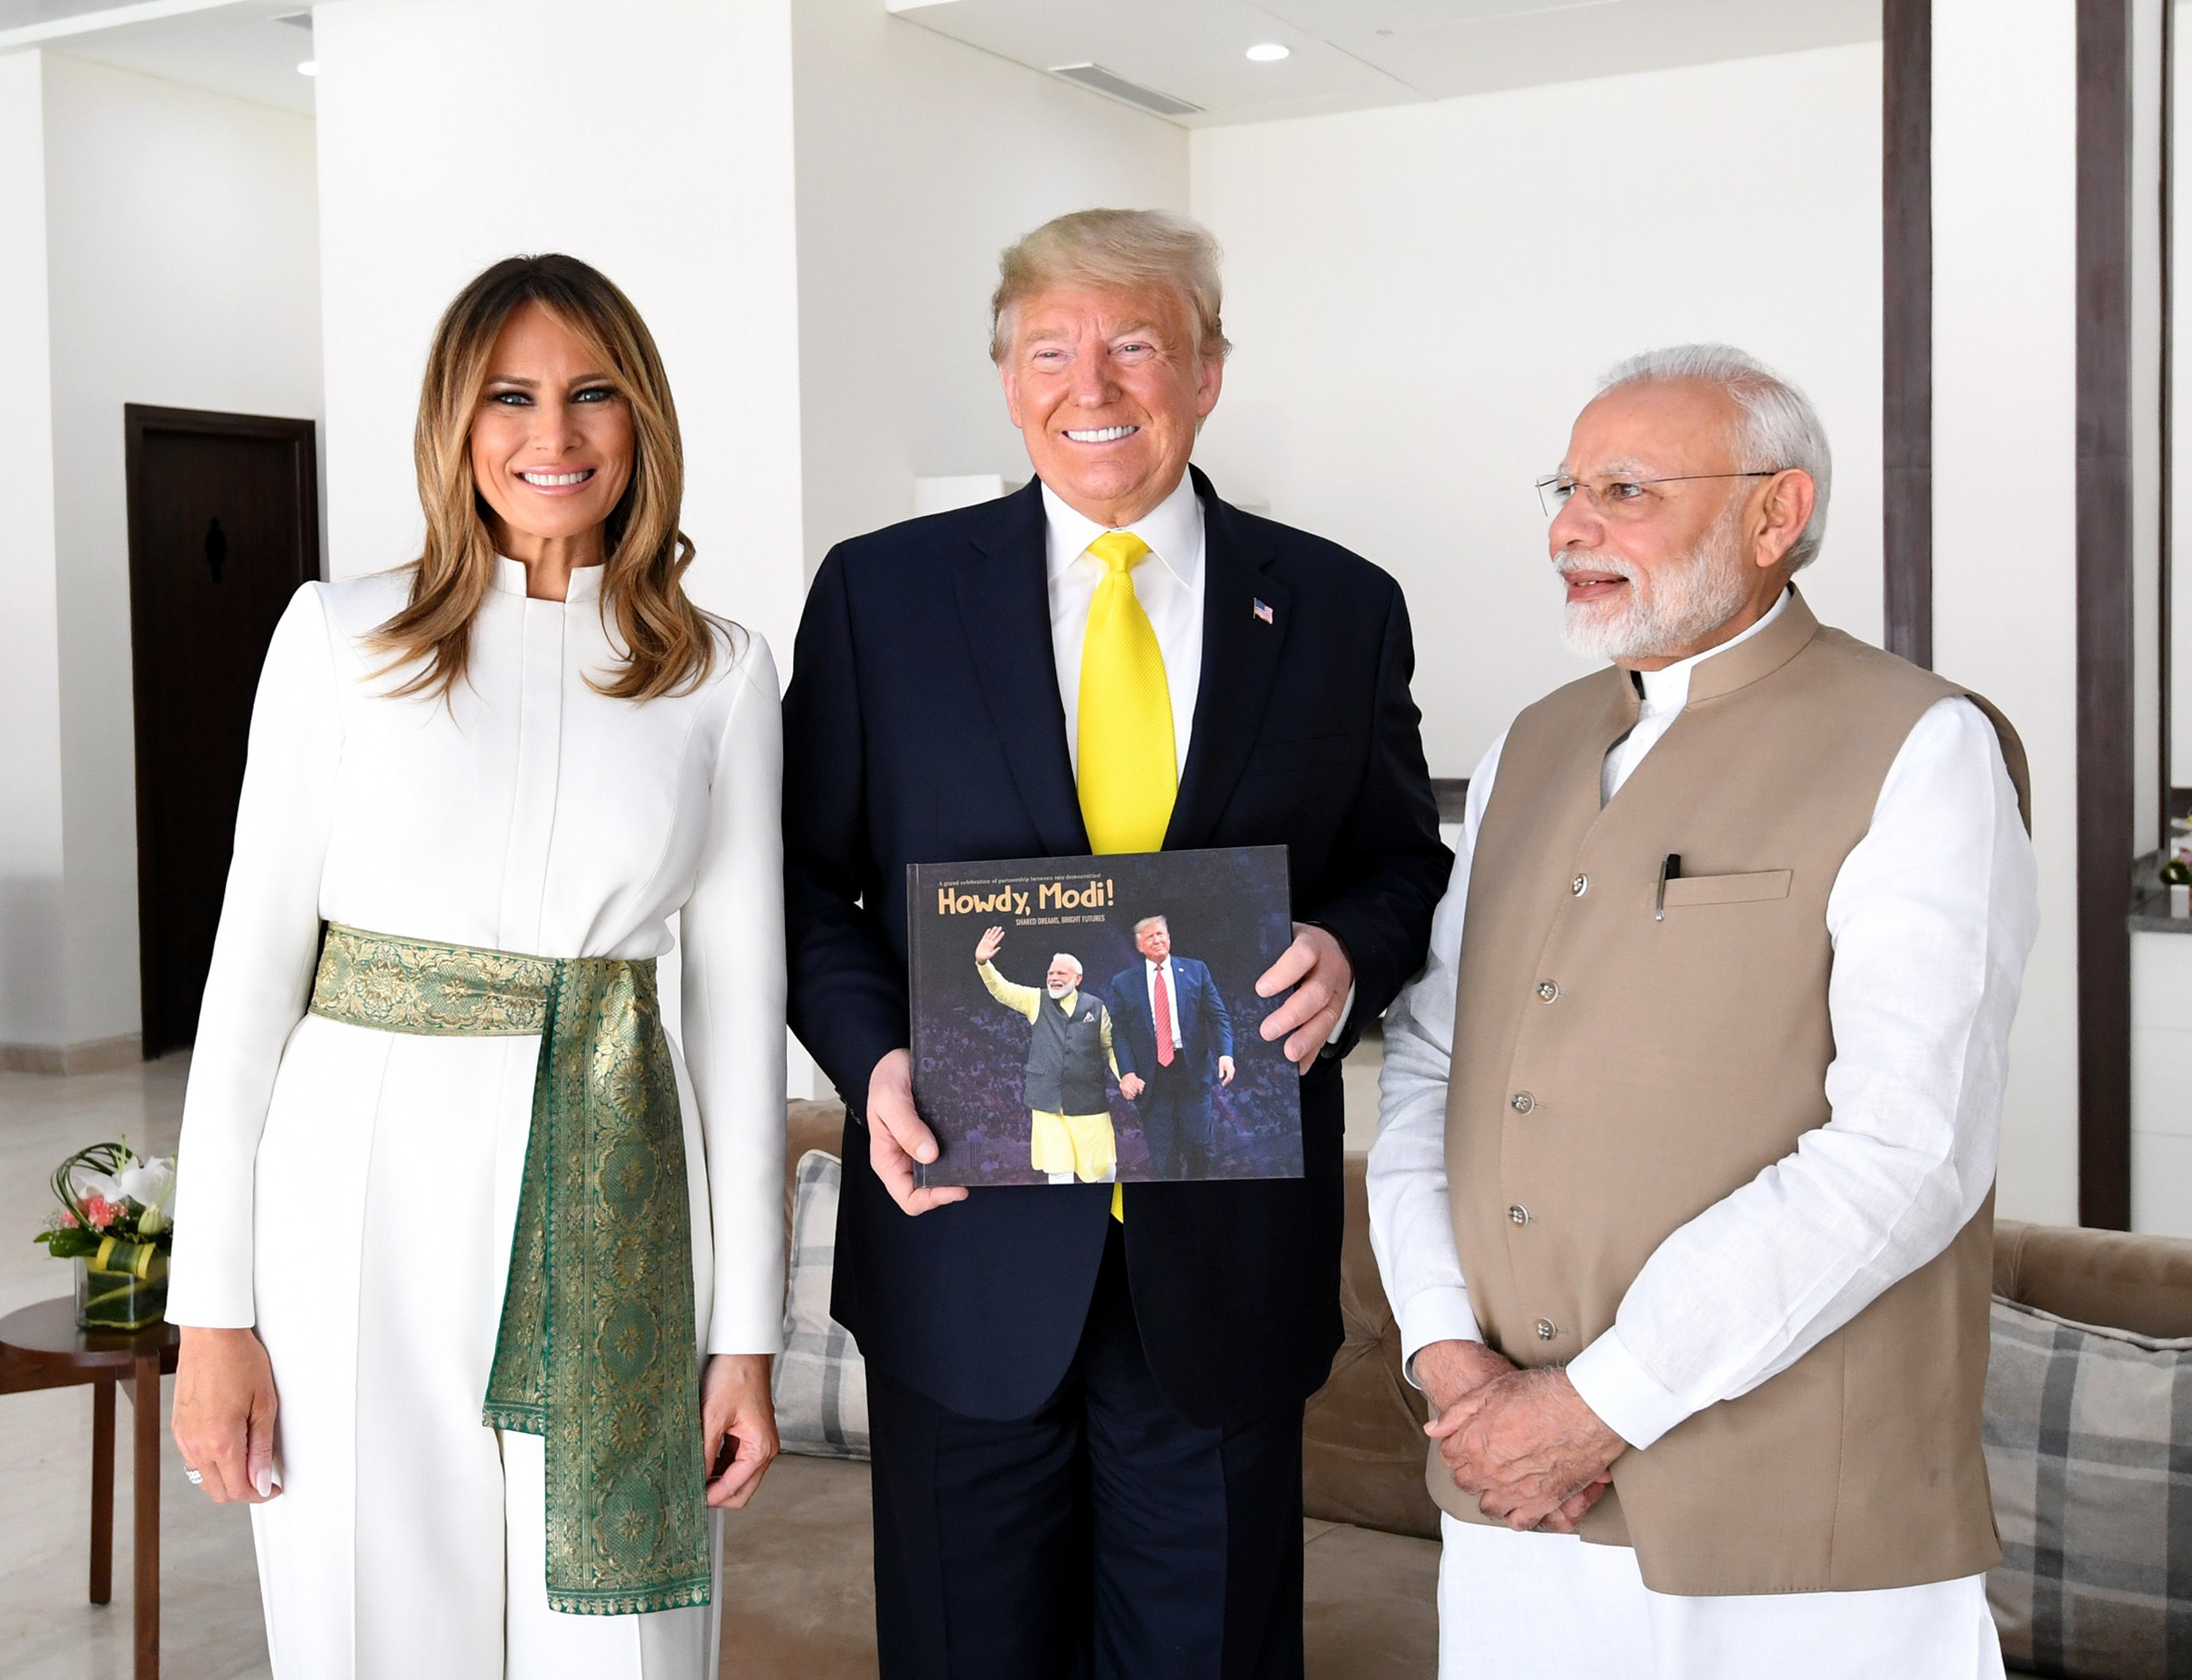 The Prime Minister, Shri Narendra Modi and the President of United States of America (USA), Mr. Donald Trump and First Lady Mrs. Melania Trump at Sabarmati Ashram, in Ahmedabad, Gujarat on February 24, 2020.